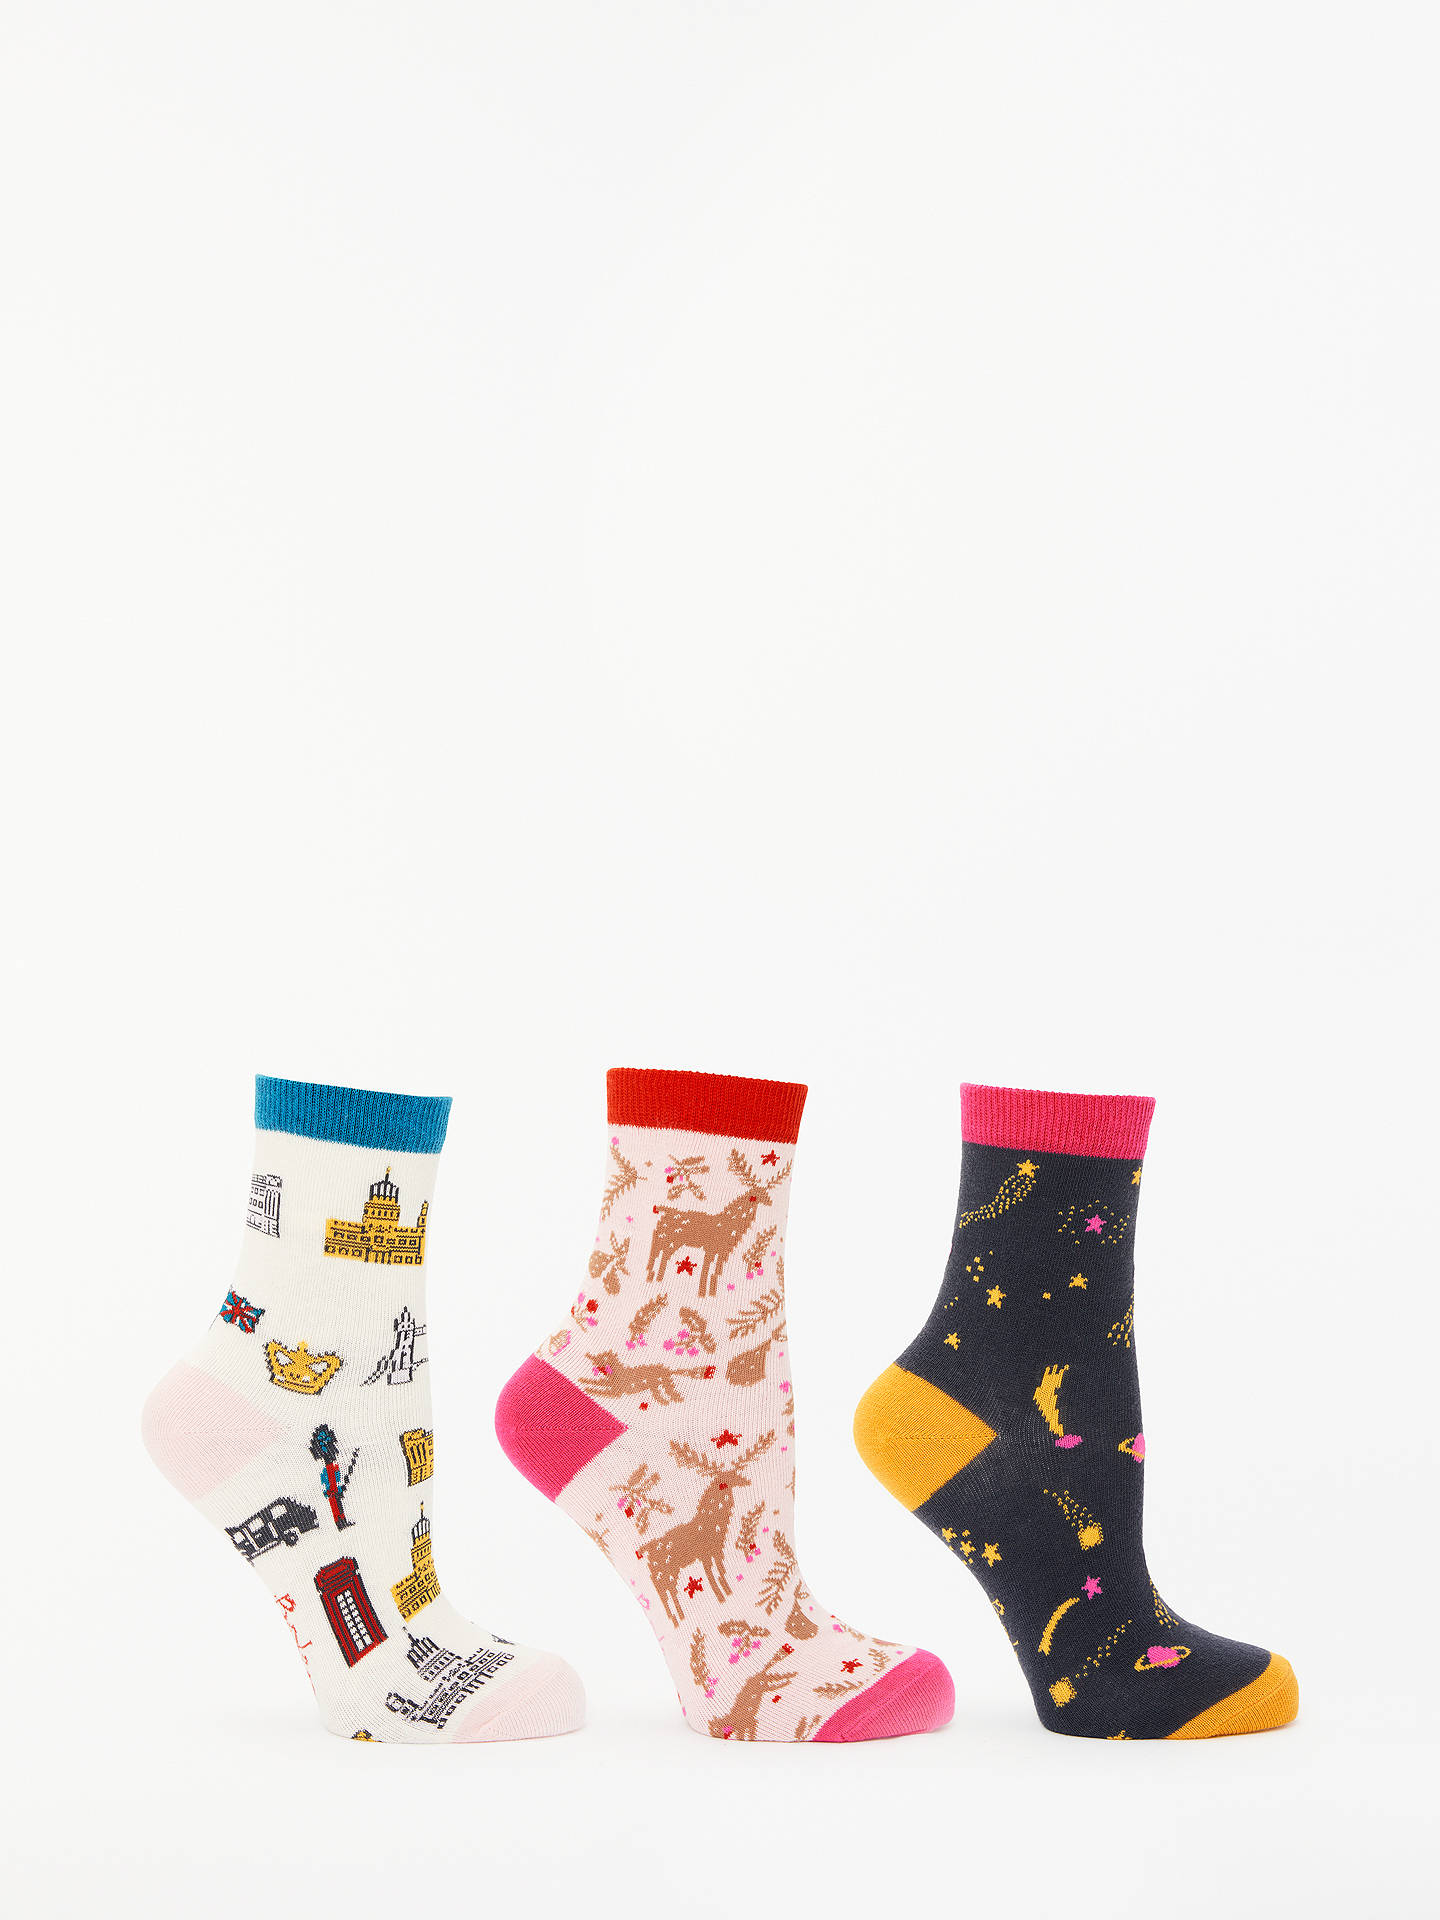 Buy Boden Novelty Print Ankle Socks, Pack of 3, Multi Christmas, One Size Online at johnlewis.com